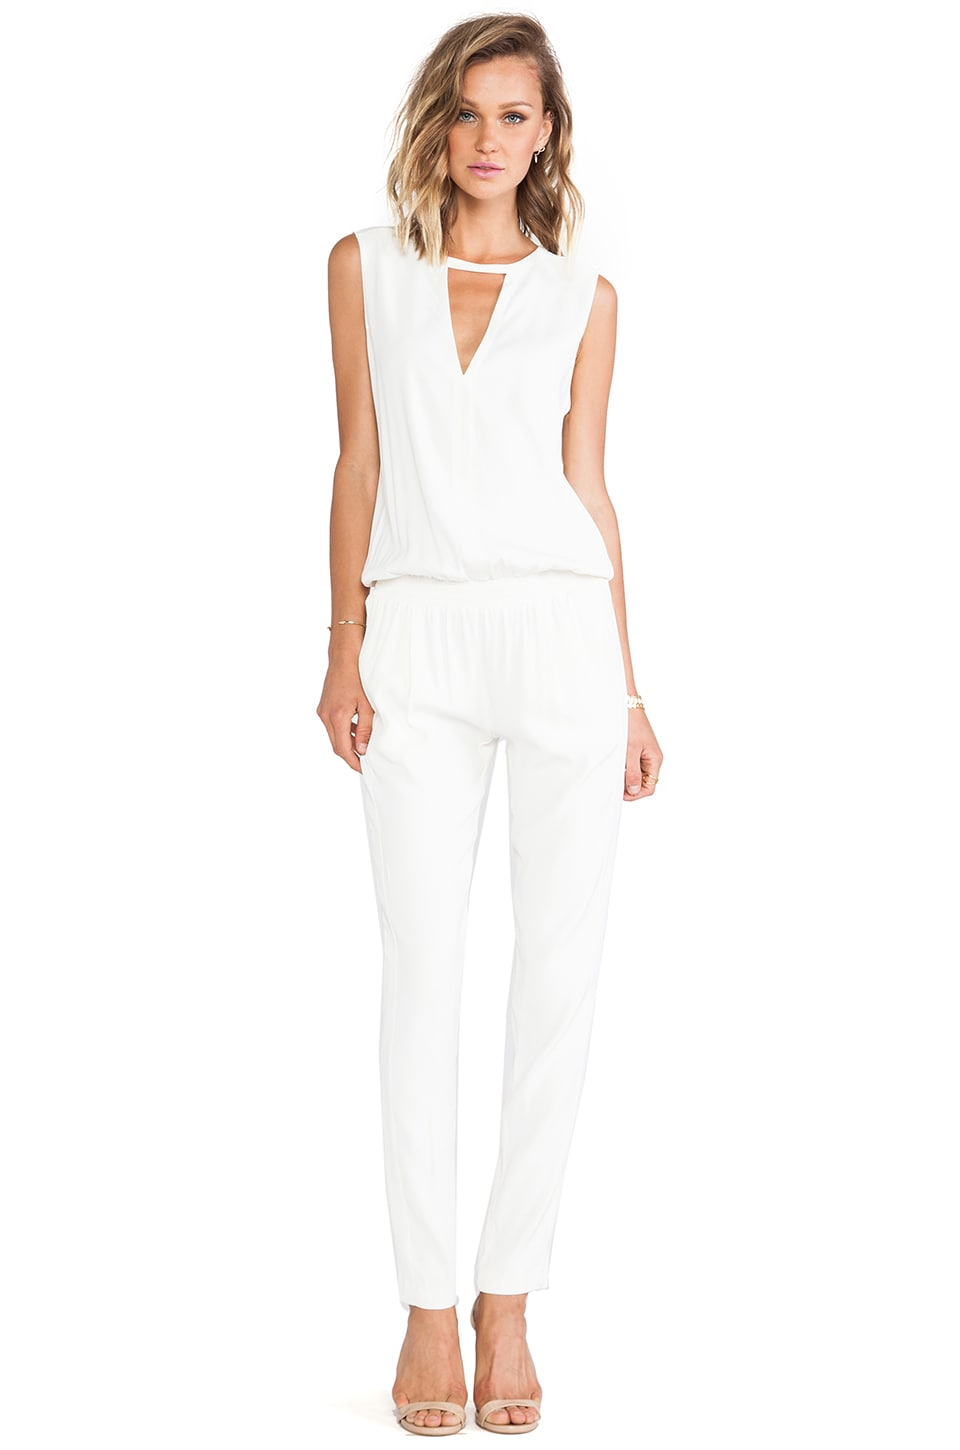 Alexis Zina V Neck Jumpsuit in White